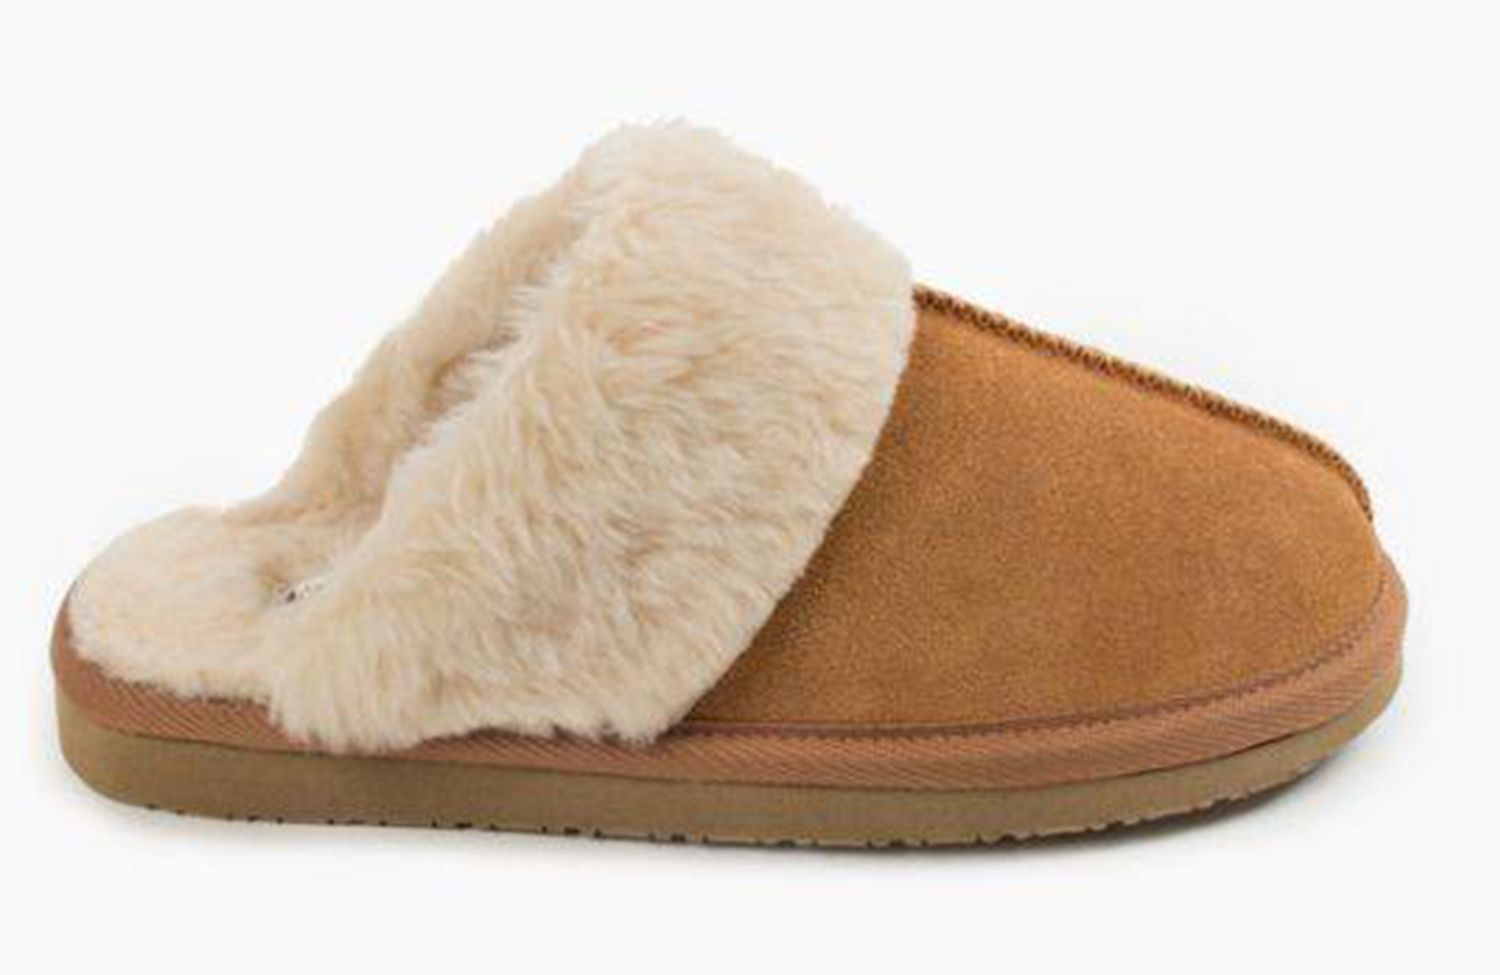 Mother's Day Gift Ideas - The Chesney (Minnetonka Moccasins)